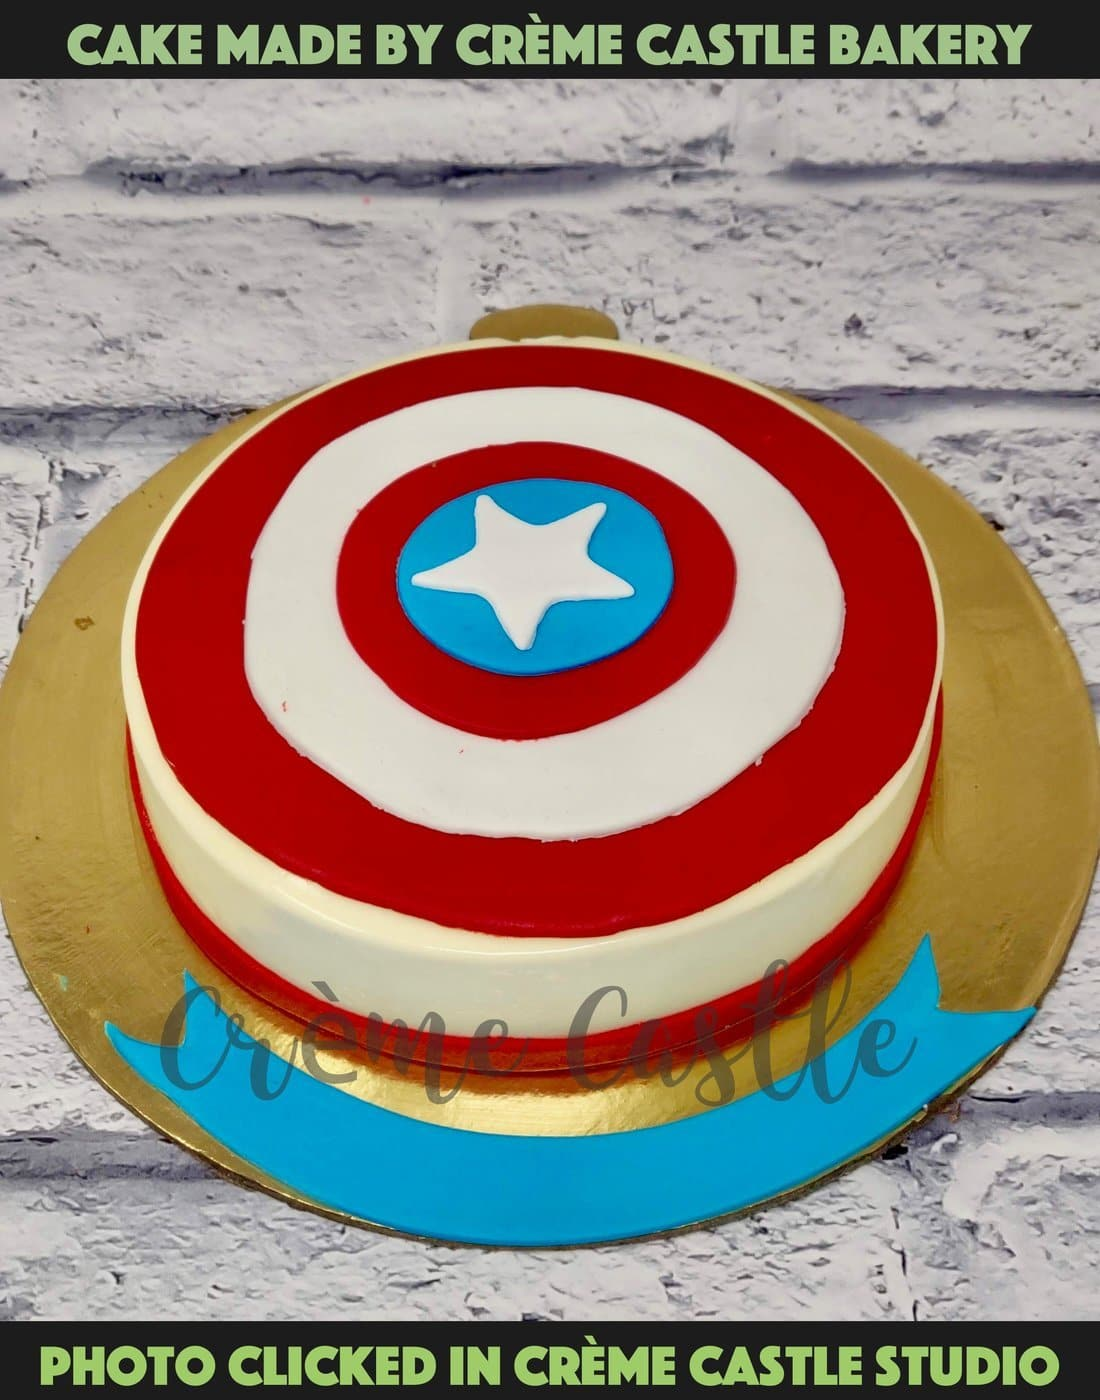 A cake for a true Captain America fan with his classic shield logo at the top in red, blue and white theme. Avengers assemble.